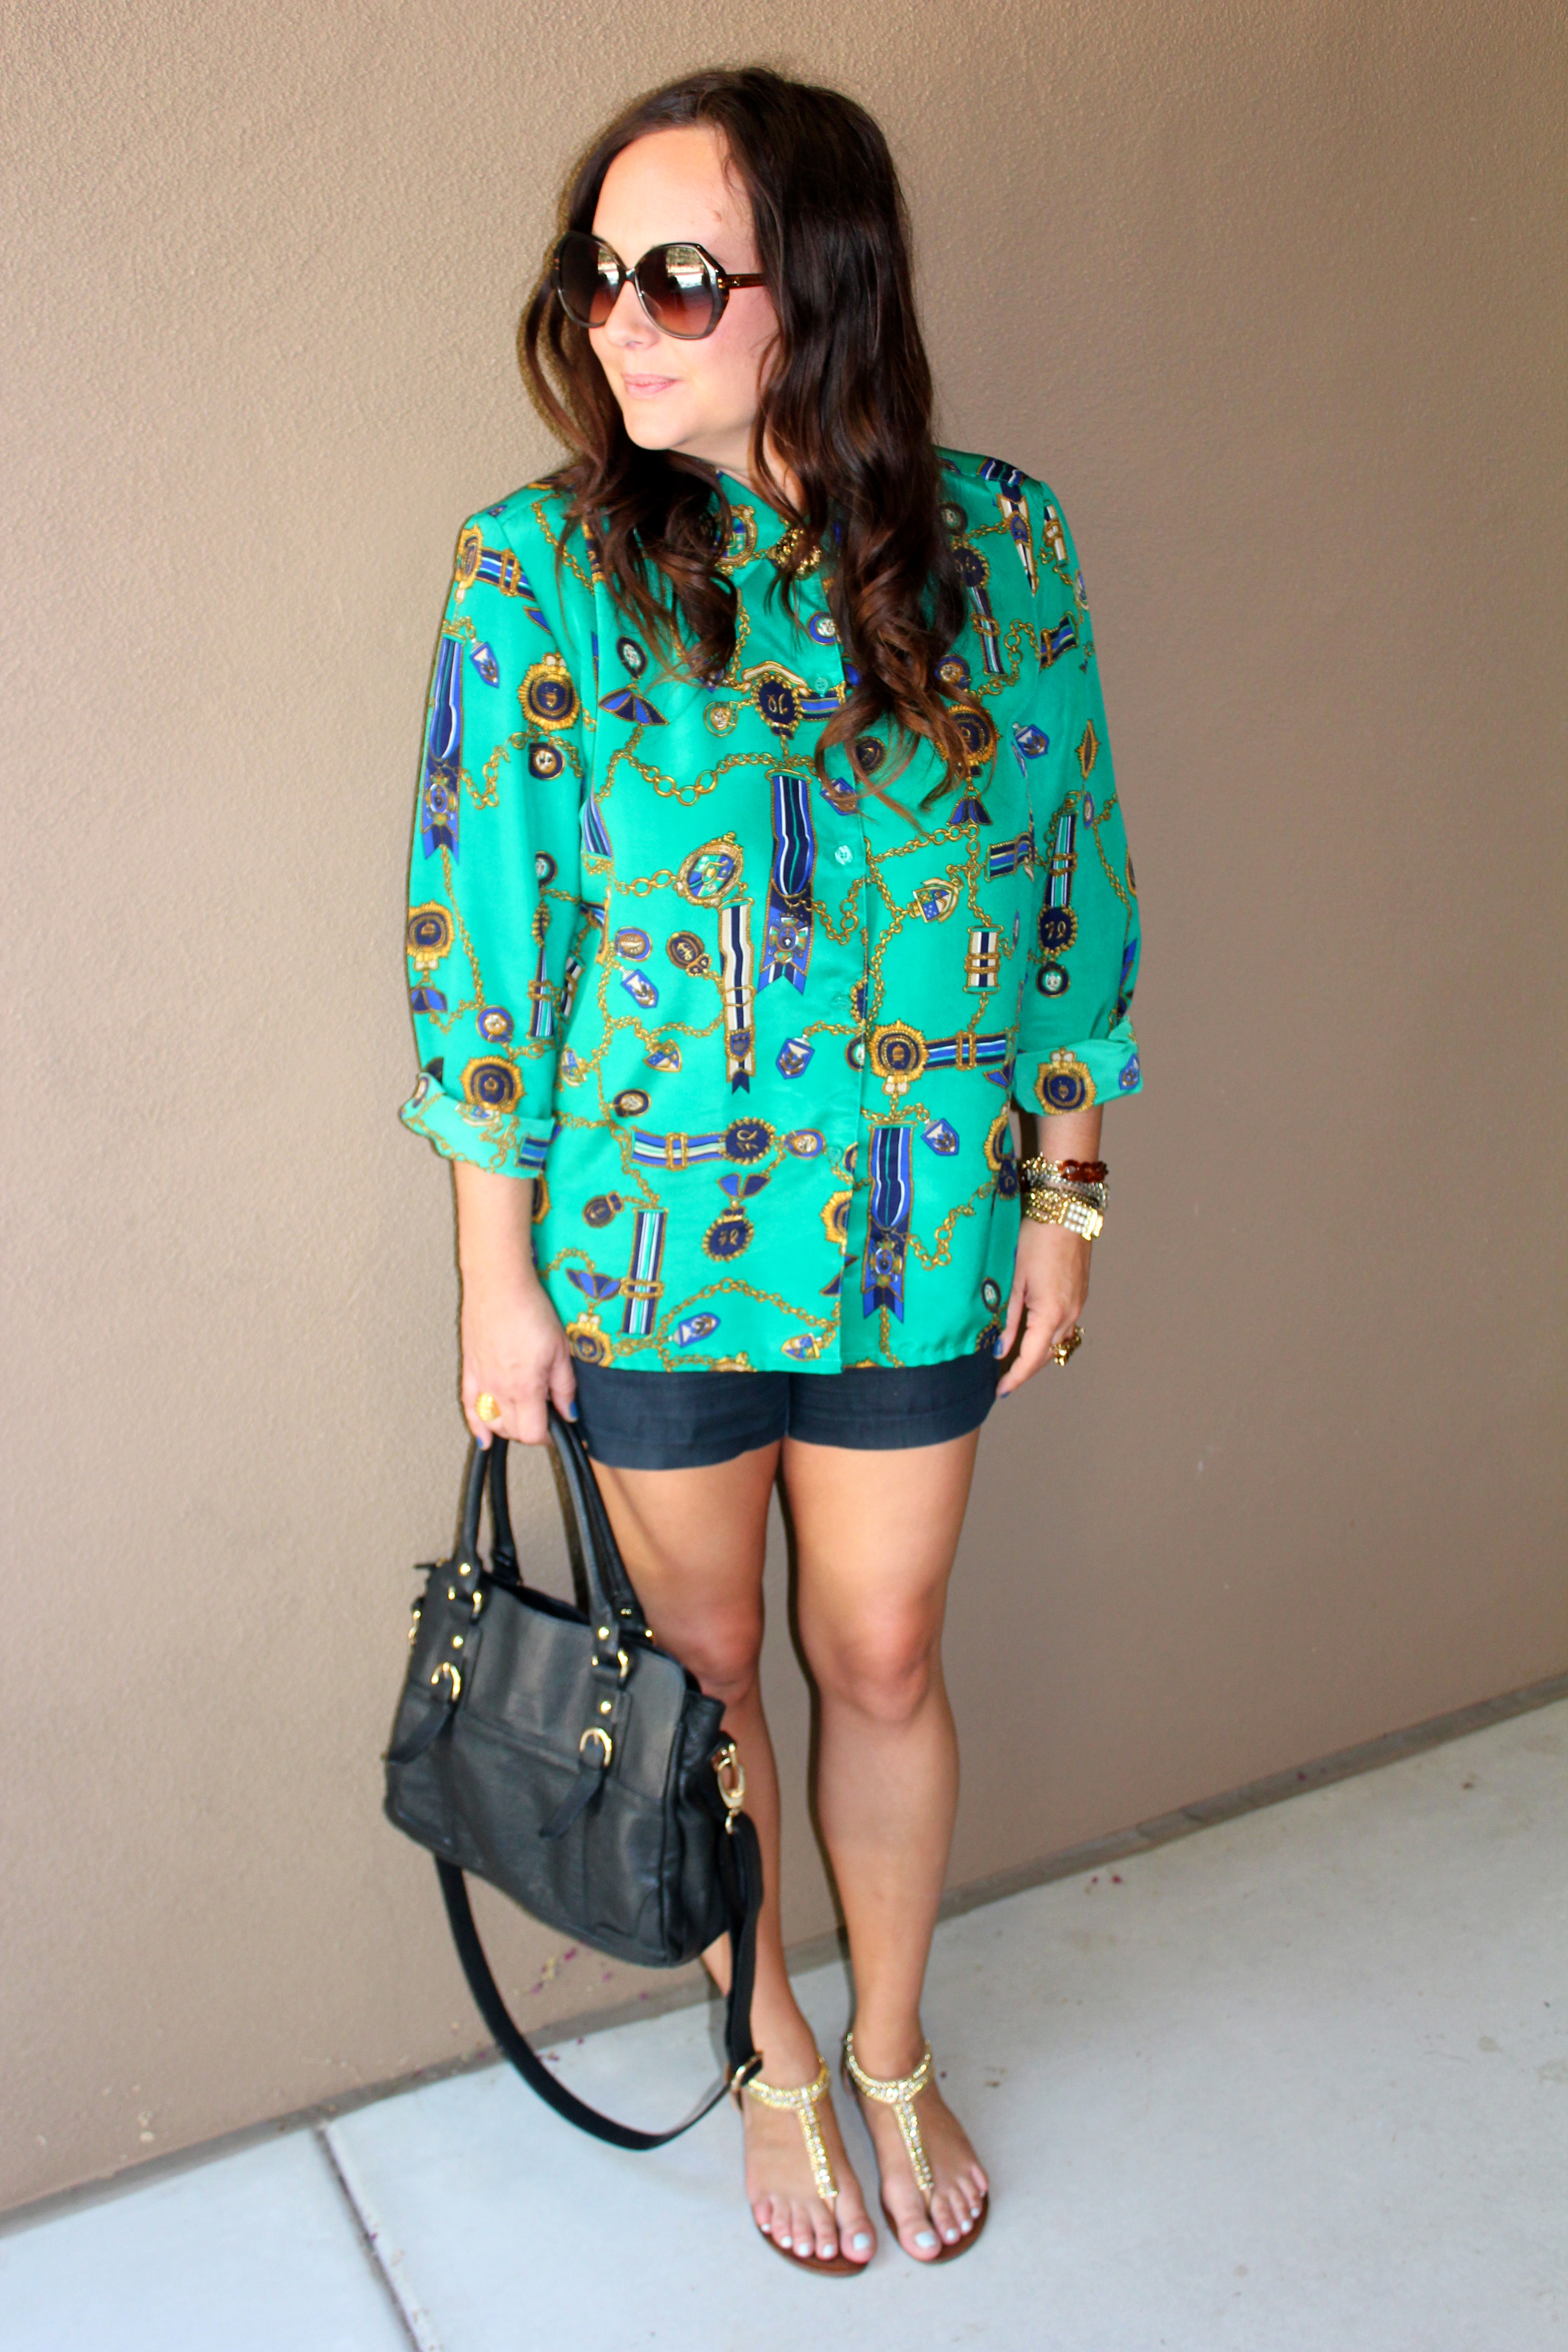 vintage blouse, amy's vintage closet, steve madden sandals, green and gold